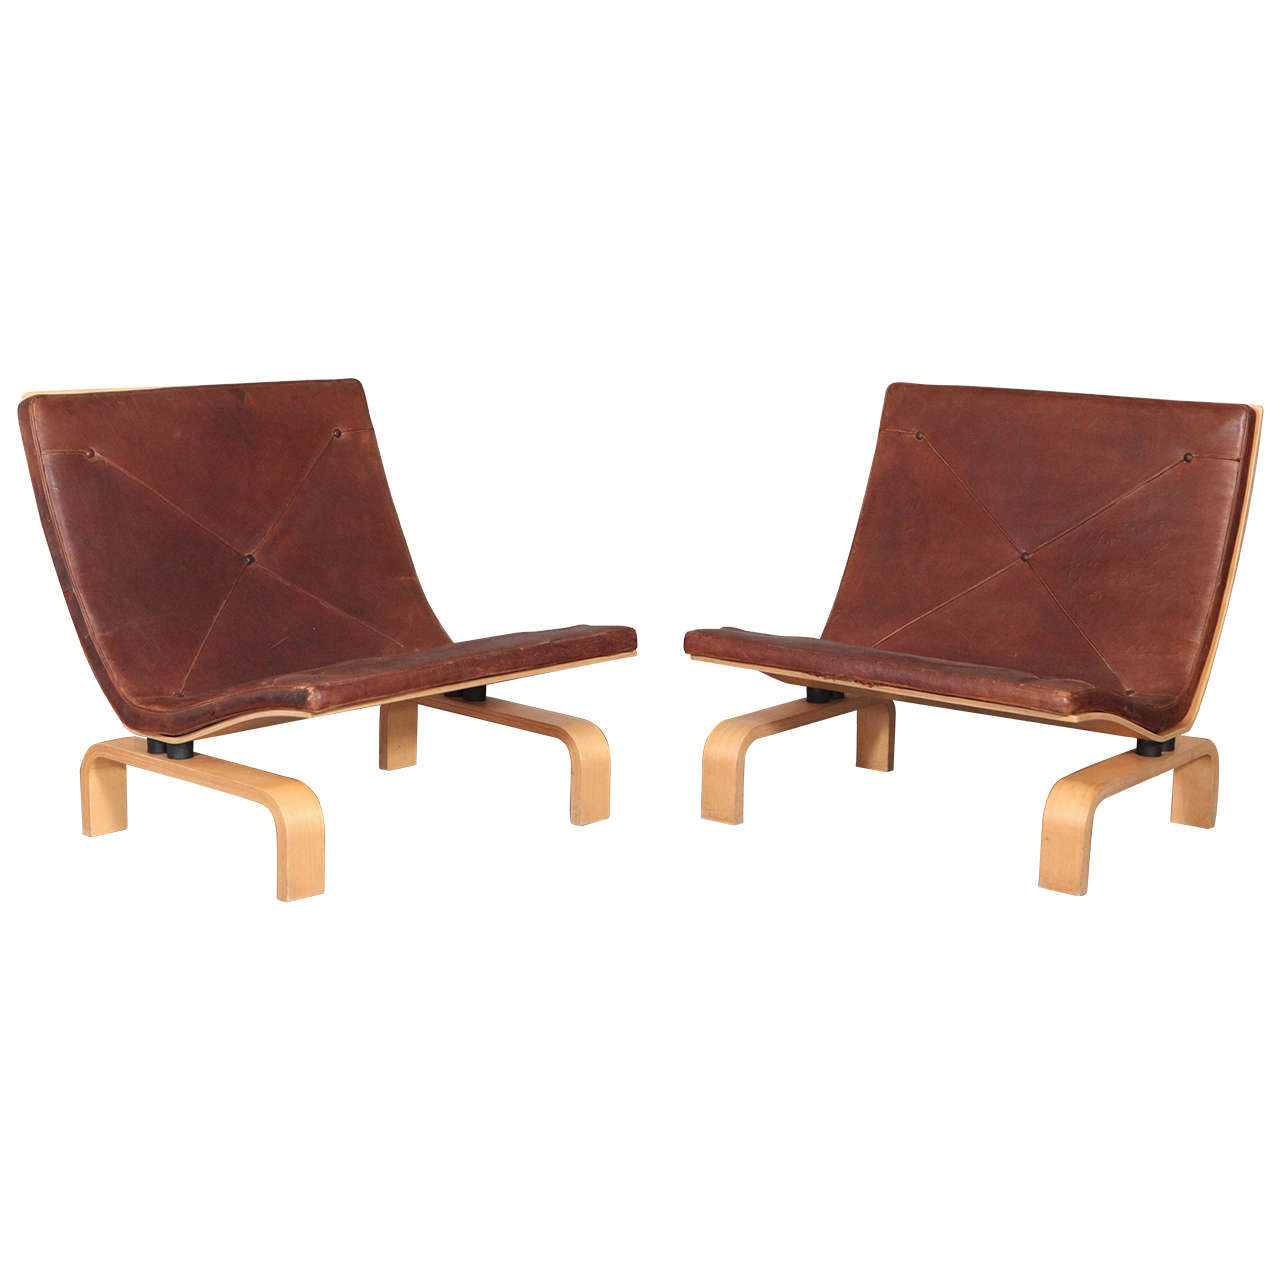 Pair of Poul Kjærholm PK 27 Easy Chairs